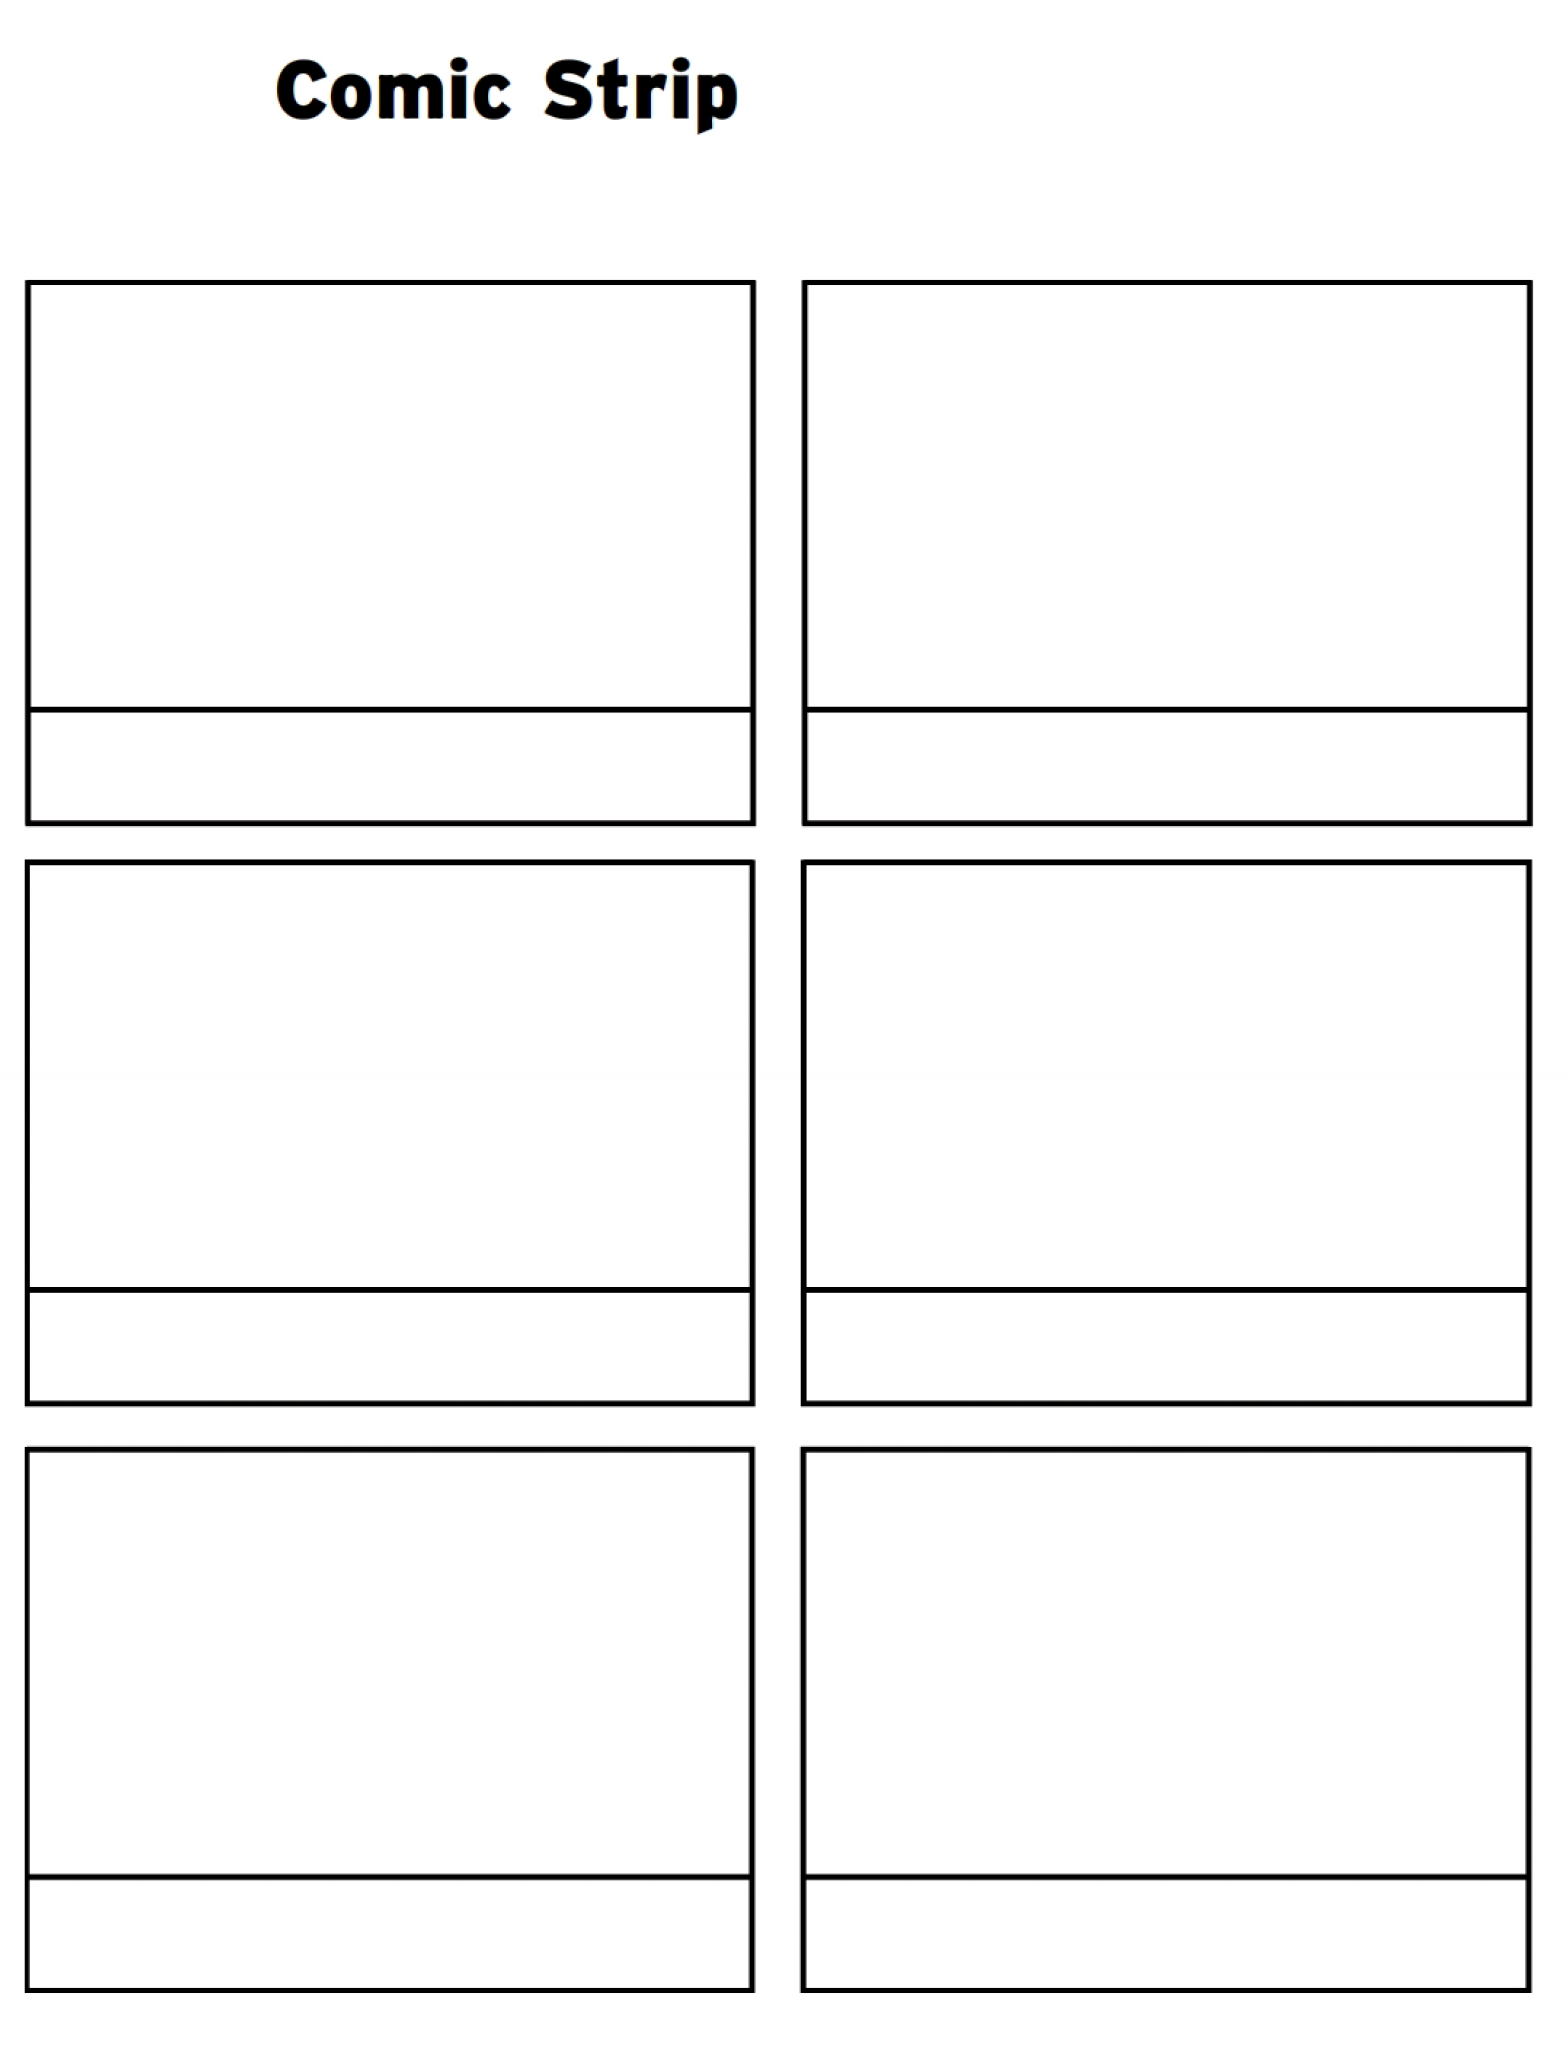 Printable Comic Strip Template Pdf Word Pages | Printable regarding Printable Blank Comic Strip Template For Kids